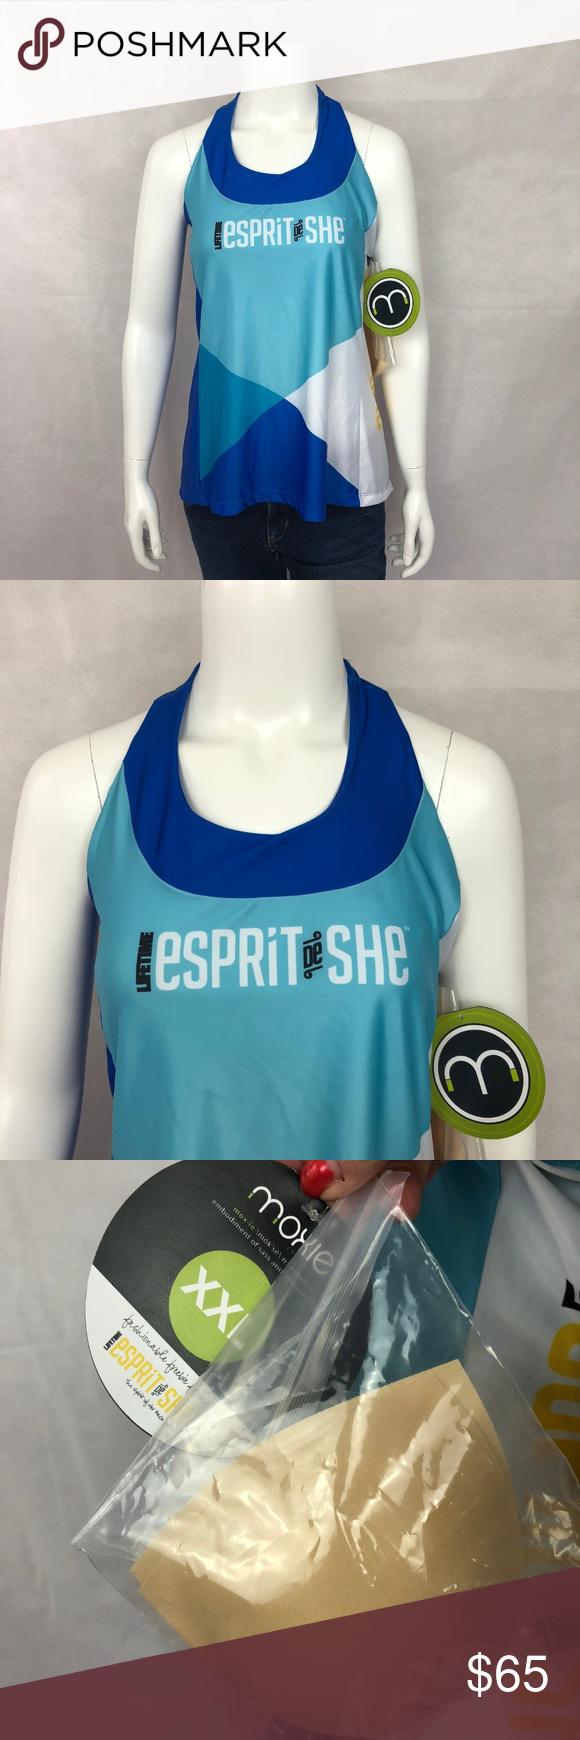 e9406465b947b New Moxie Blue Cycling Tank Top XXL -New with tags Moxie cycling tank top  -Size XXL -Lifetime Esprit De She race -83% deluxe wicking polyester 17%  spandex ...